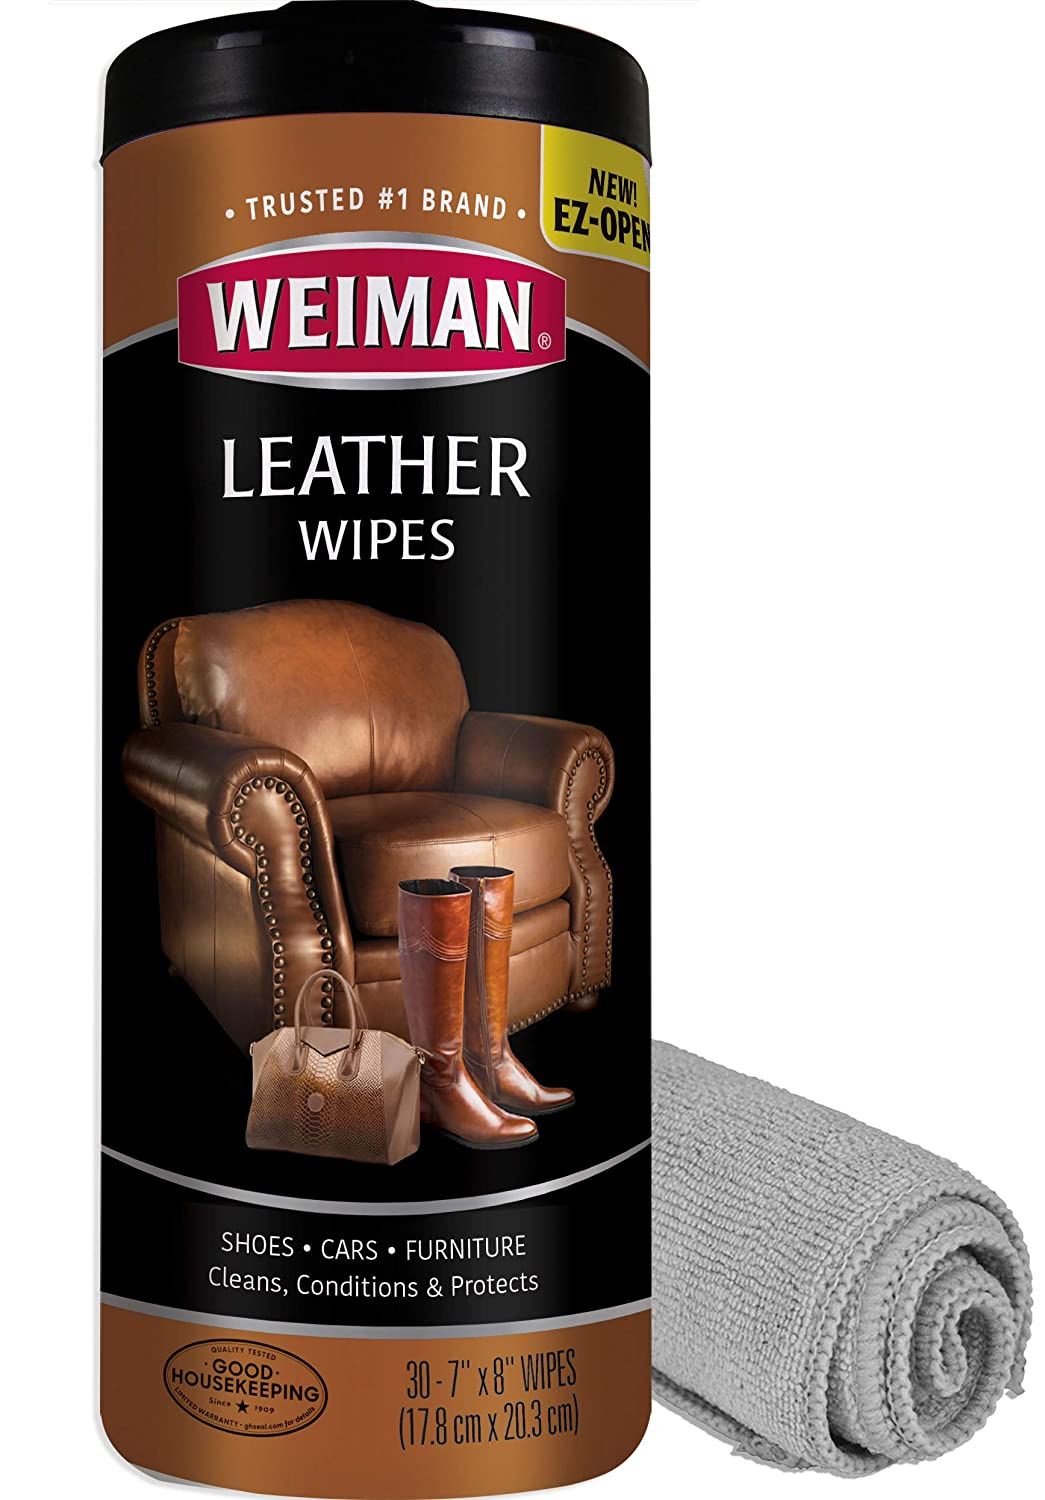 Weiman Leather Cleaner Kit Leather Wipes (30 Count) and Microfiber Cloth - Clean and Condition Car Seats and Interior, Shoes, Couches and Other ...